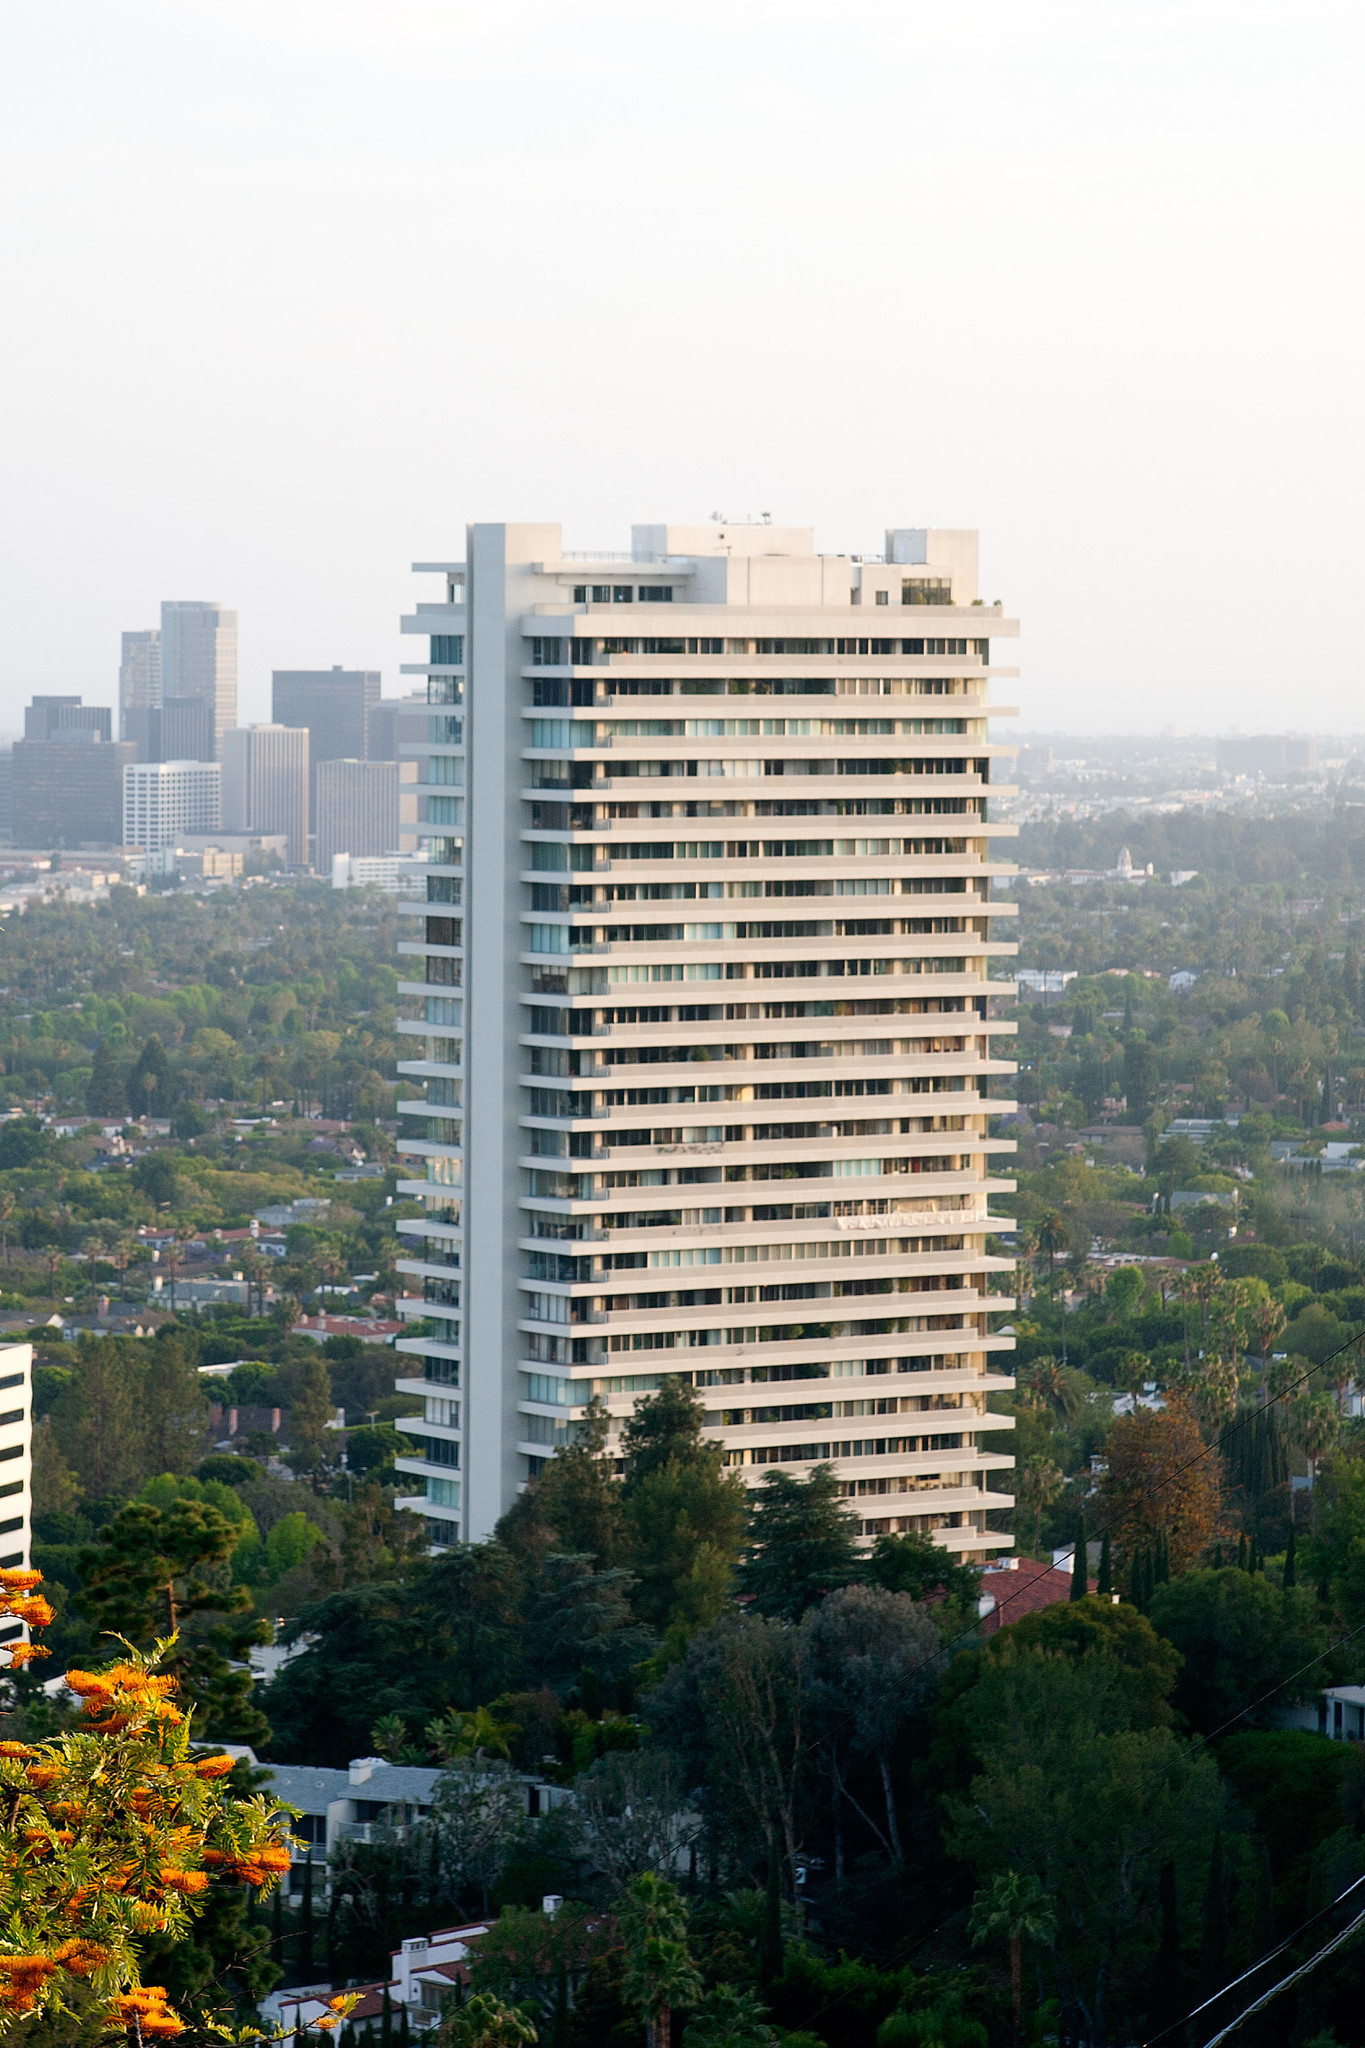 Joan Collins, Elton John and Cher are among past and present residents of the Sierra Towers in West Hollywood.